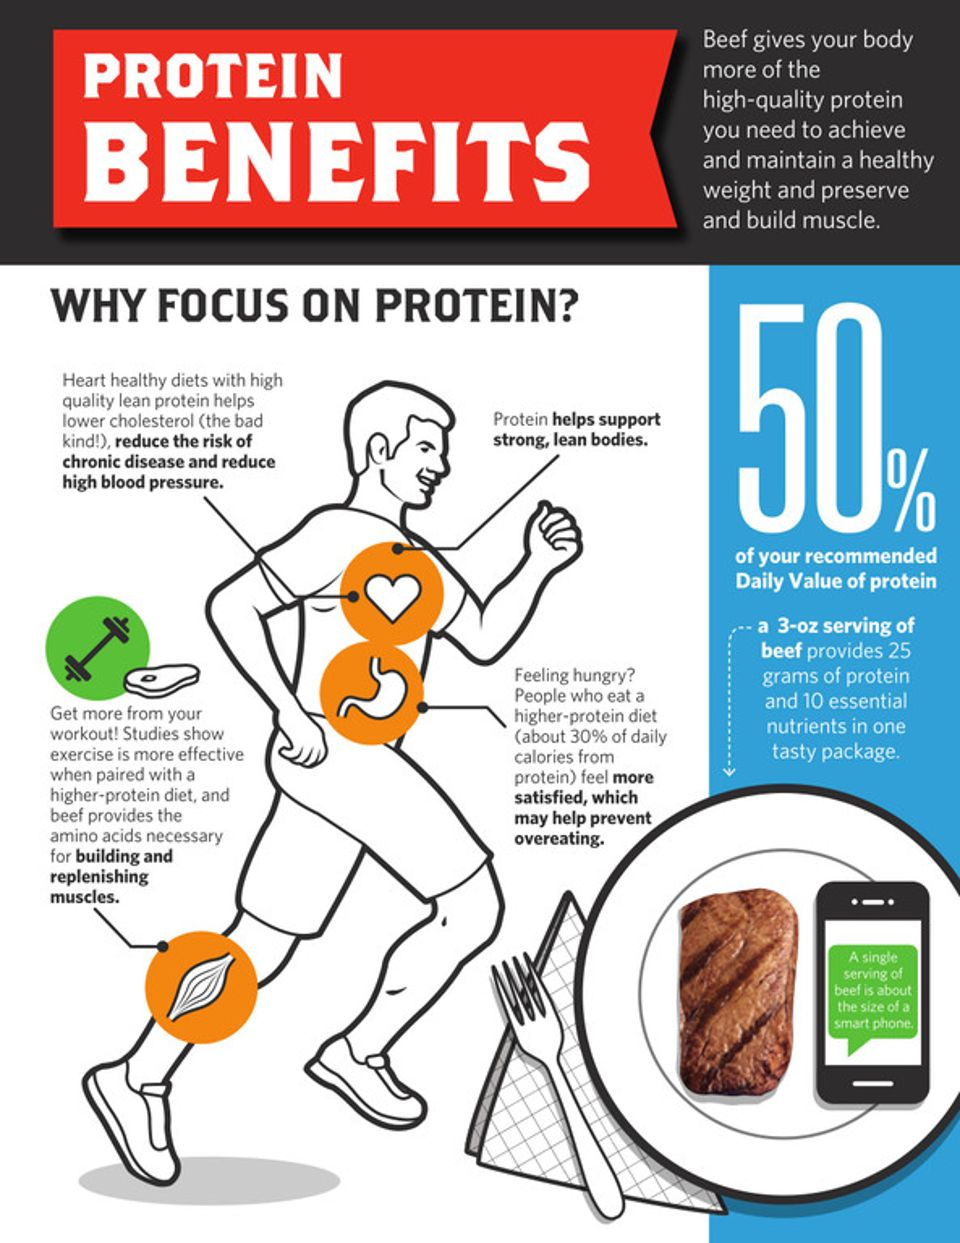 Protein Benefits Infographic.jpeg